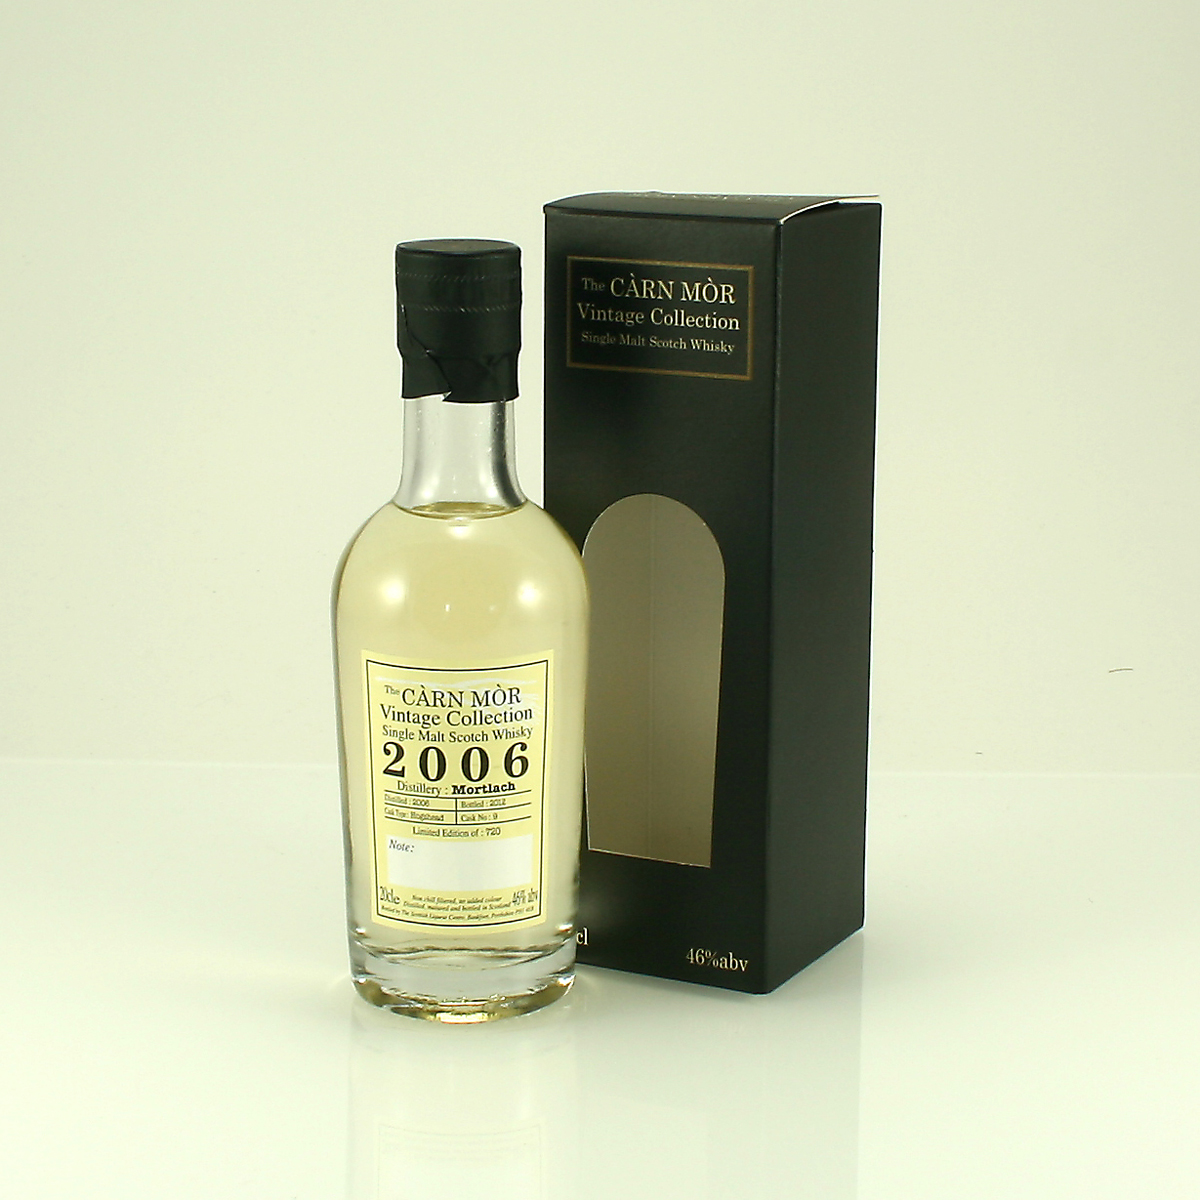 MORTLACH 2006 Carn Mor Vintage Collection 46% 20cl